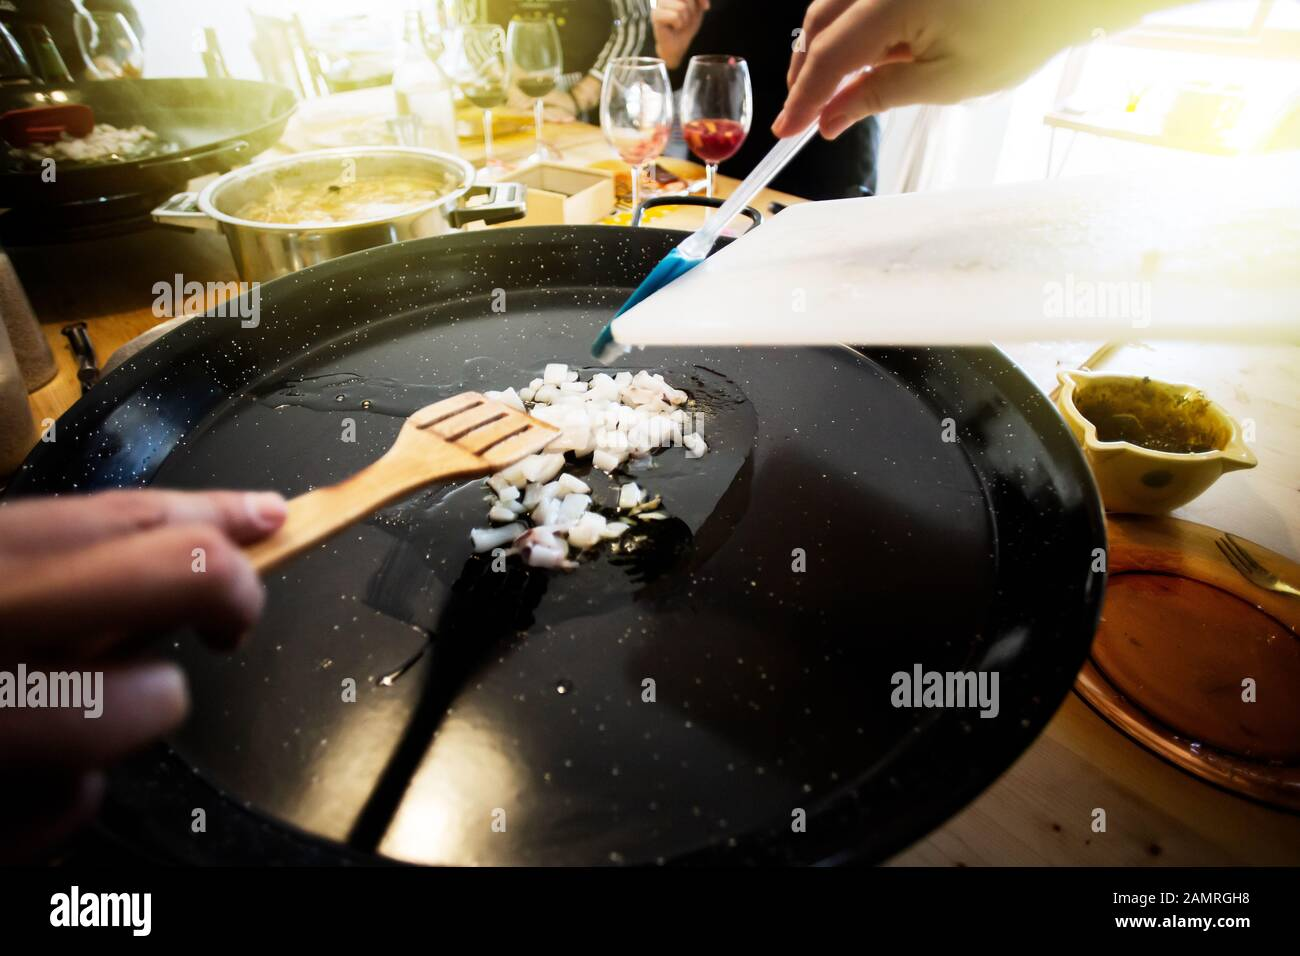 Paella ingredients on the pan, This is a traditional Spanish food usually prepared with rice, meat, seafood Stock Photo